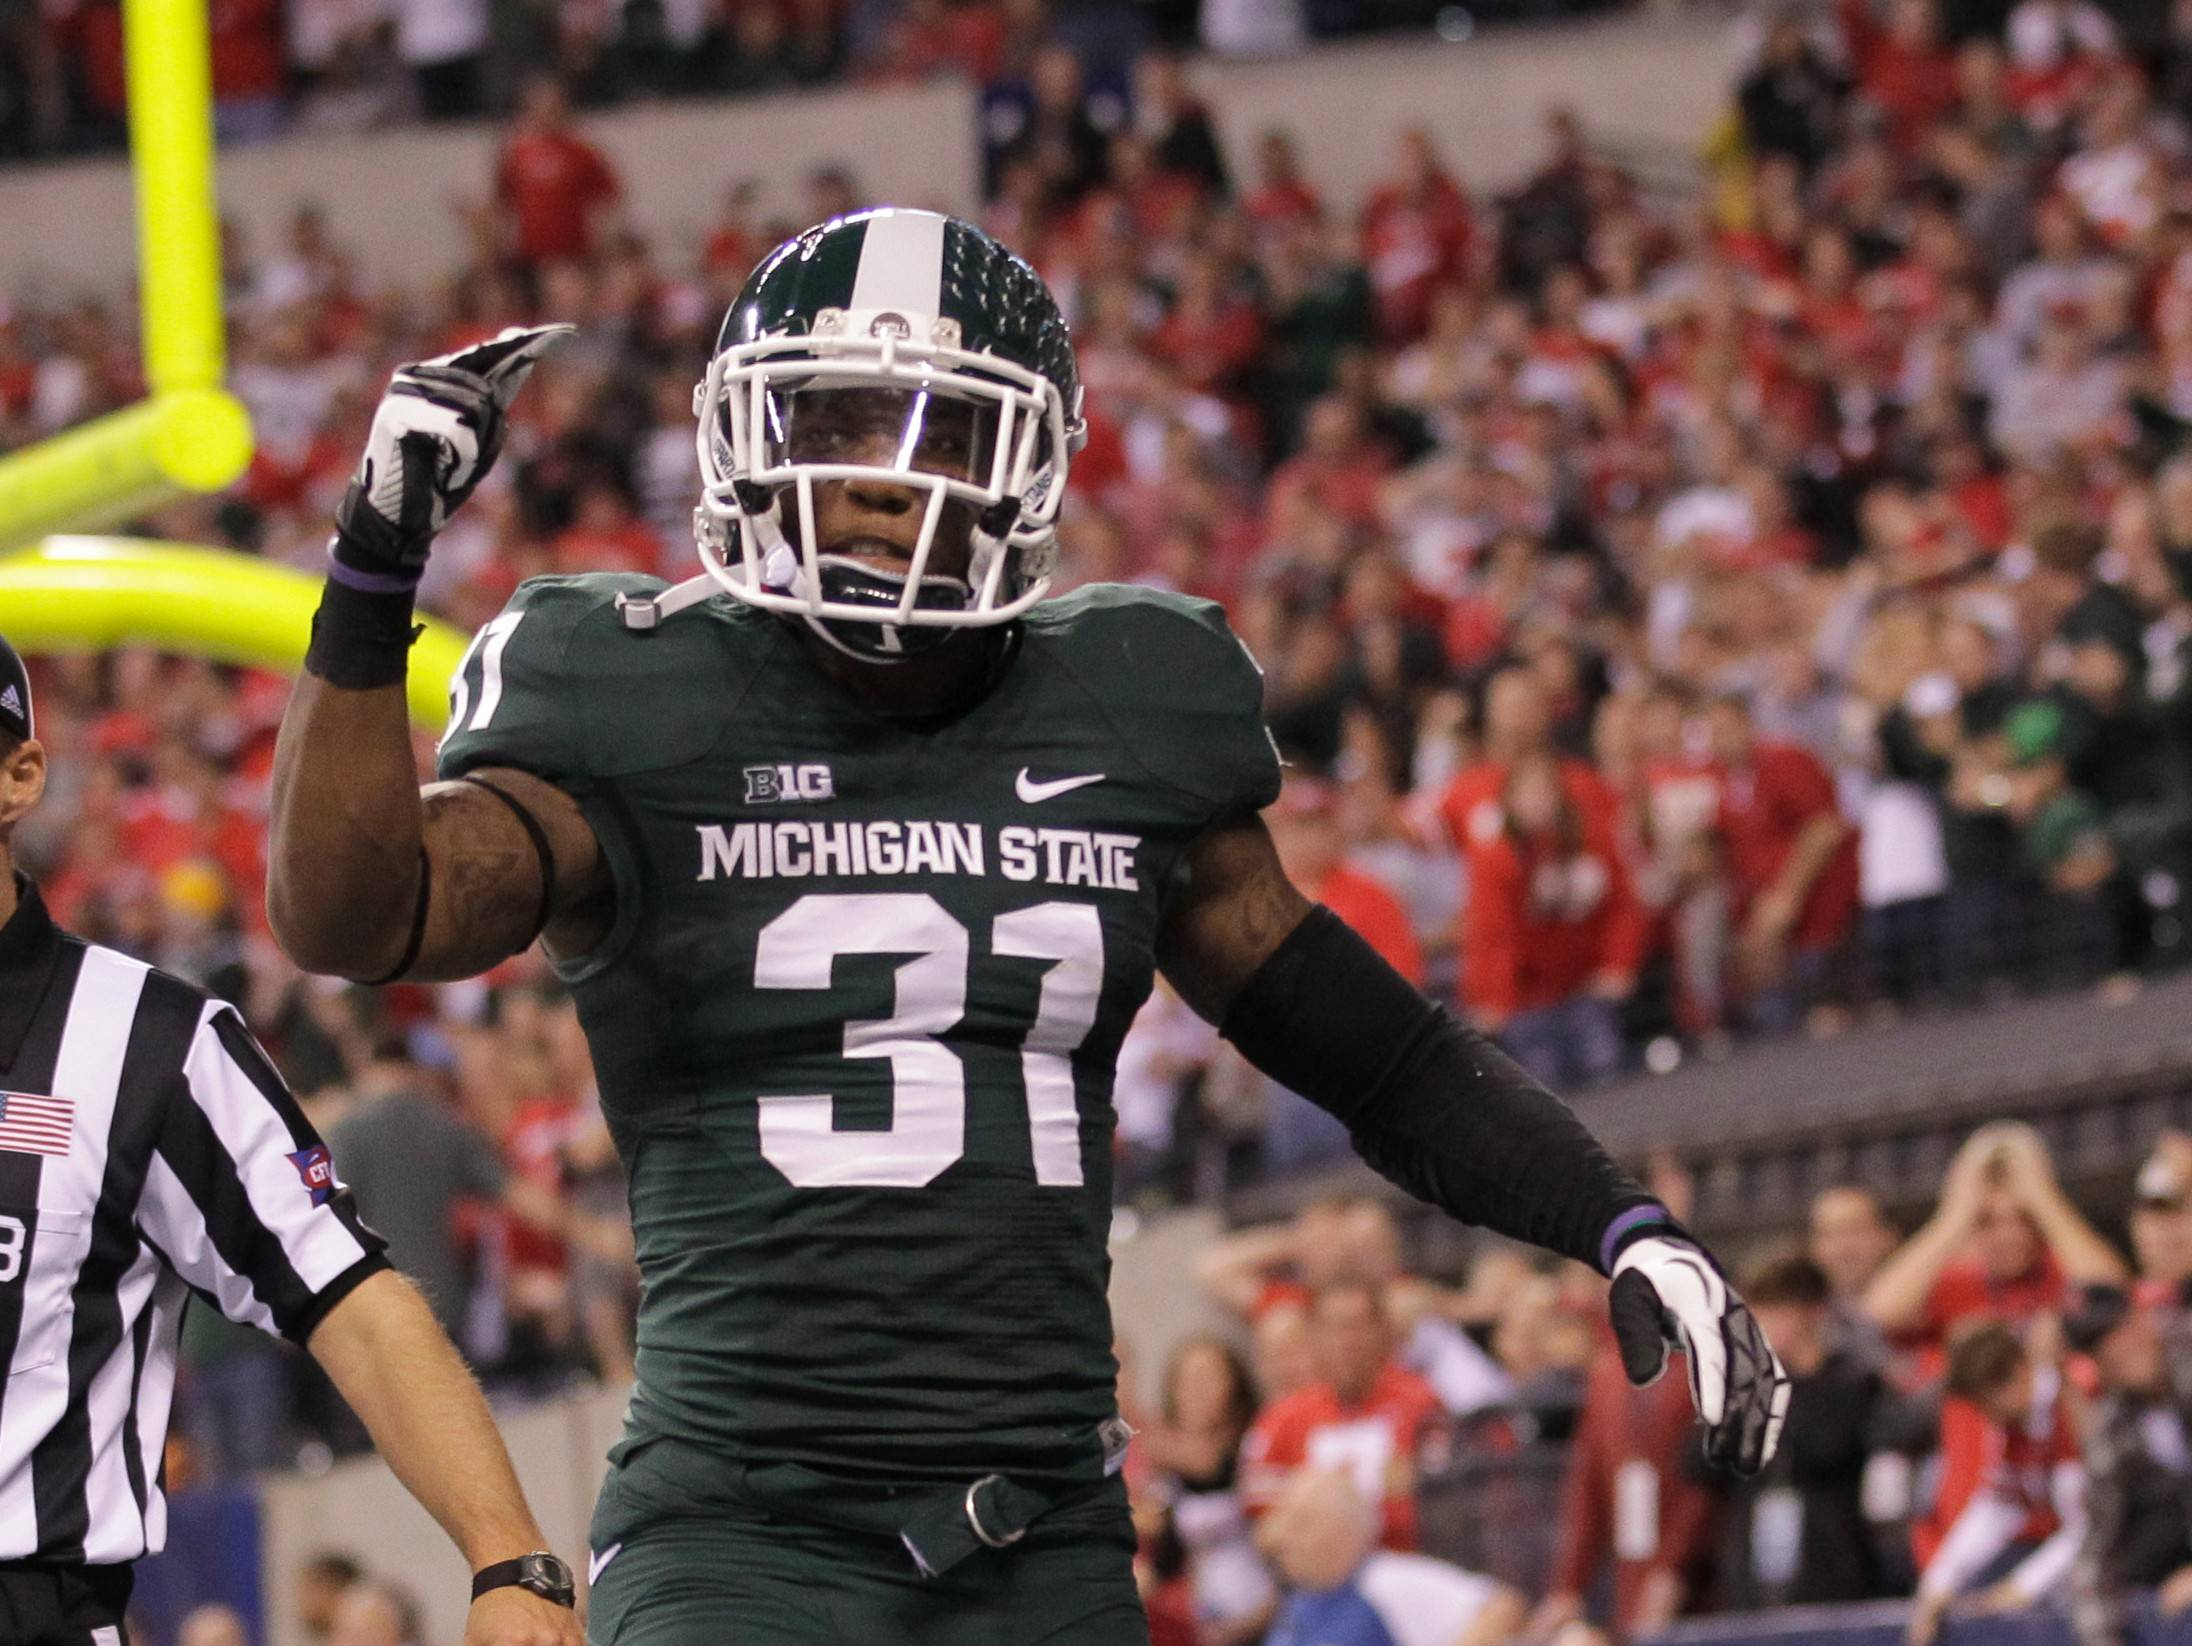 Michigan State's Darqueze Dennard (31) is considered to be one of the top two cornerback prospects available in the NFL draft.